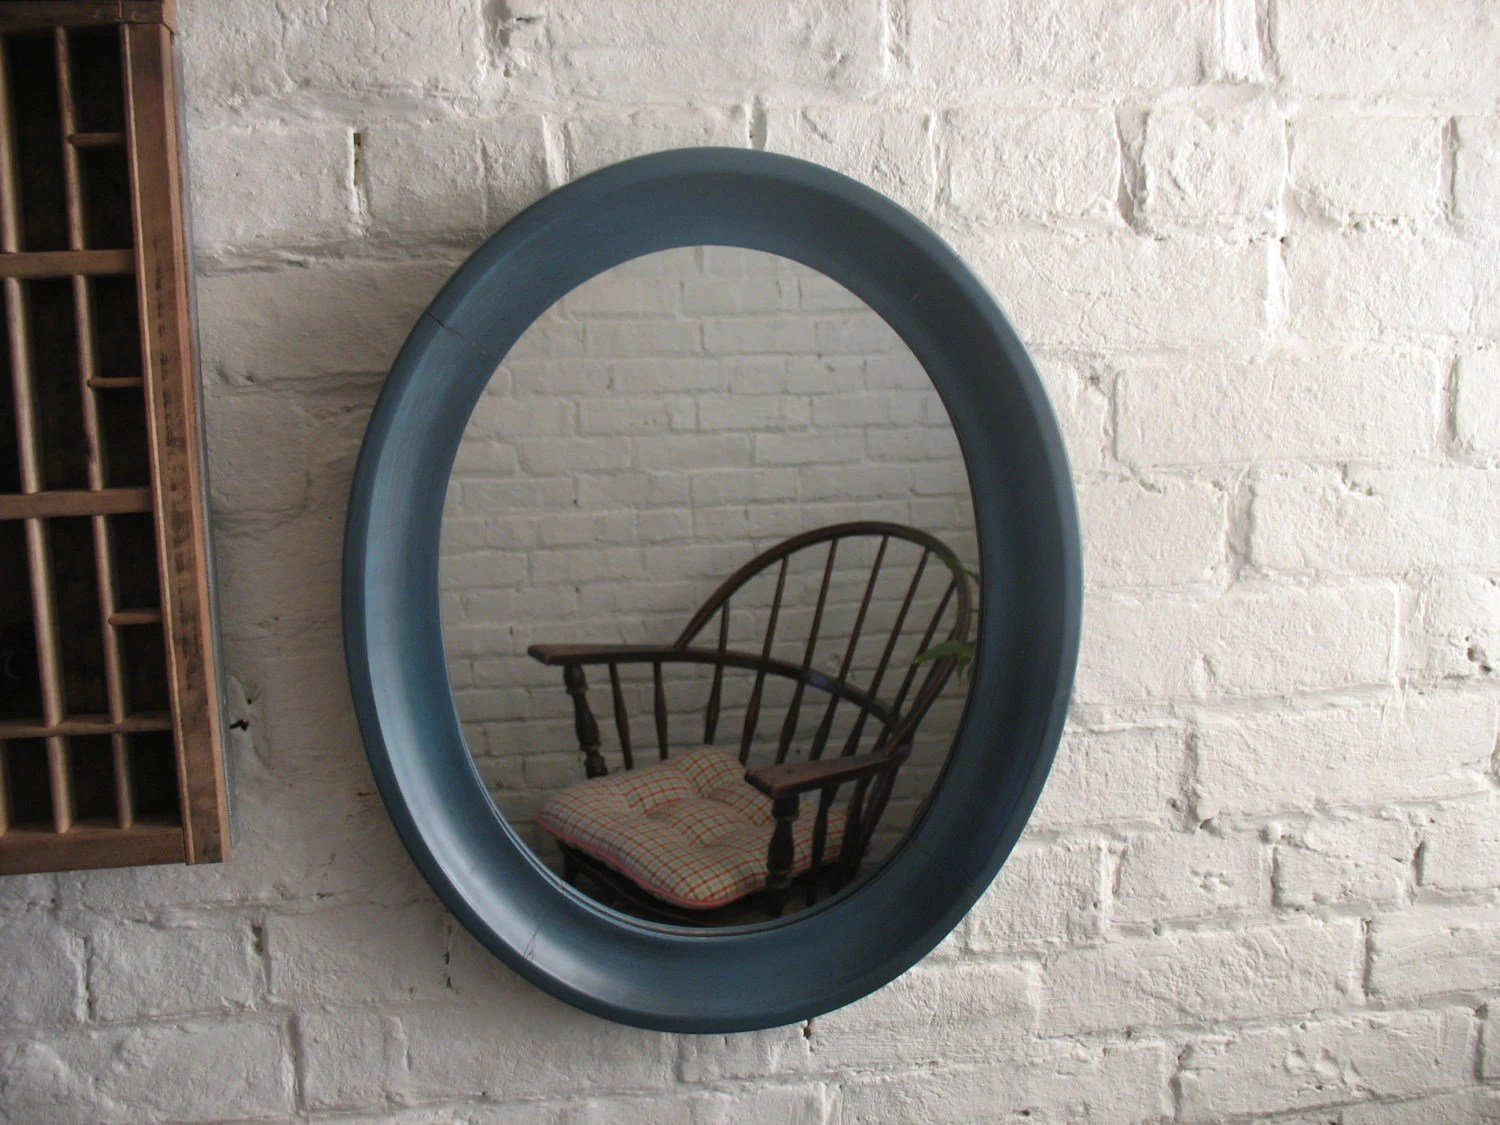 tell city chairs pattern 4548 cosco kitchen stool chair vintage mirror antique blue